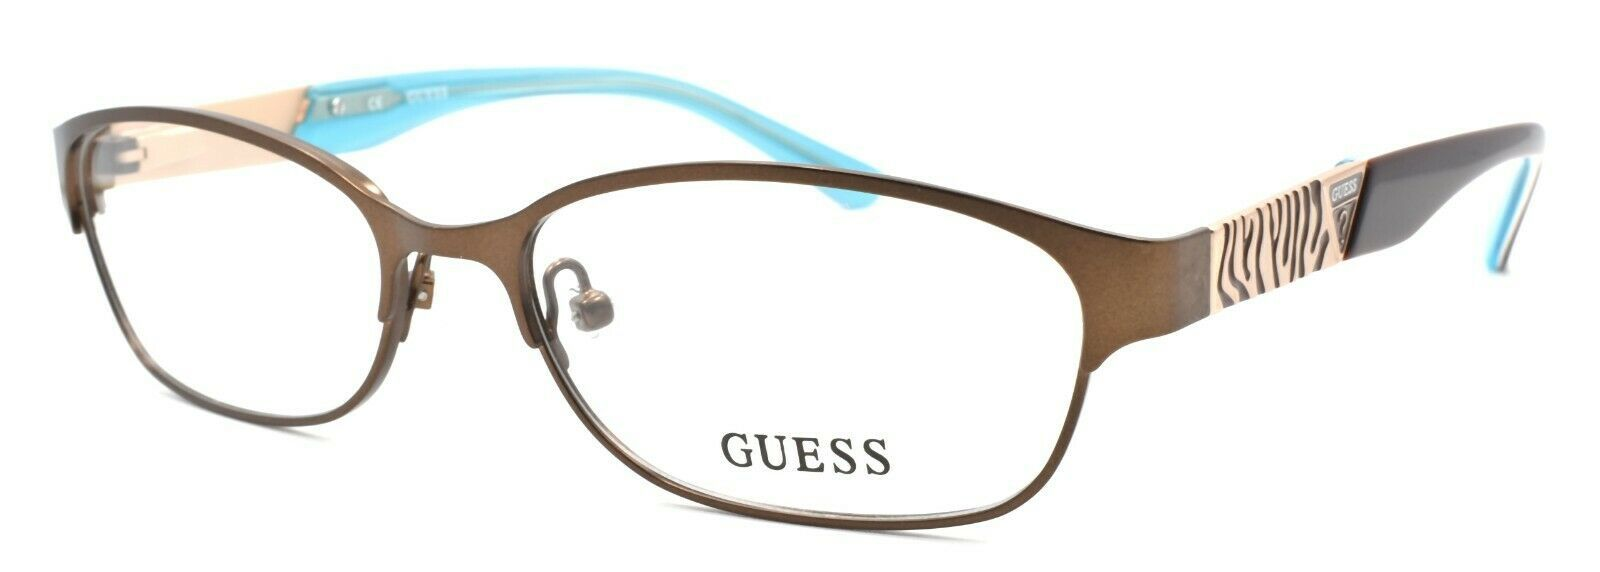 Primary image for GUESS GU2353 BRN Women's Eyeglasses Frames 53-16-135 Brown